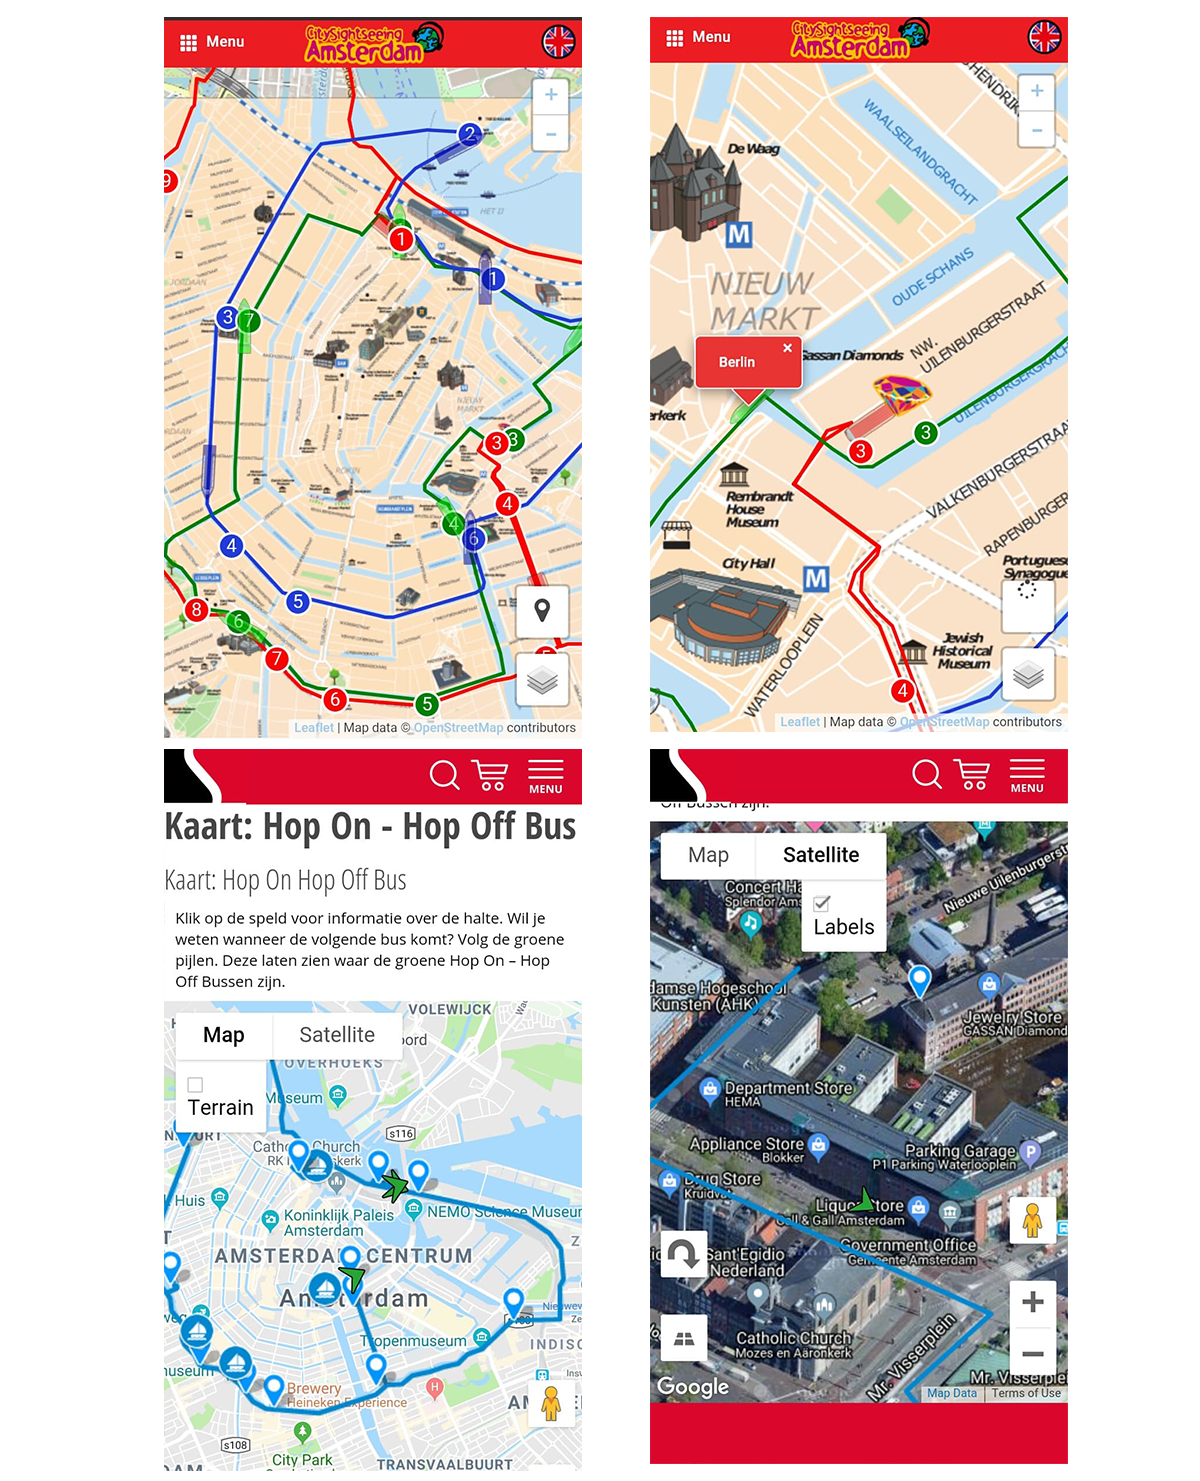 Public Transportation Apps' APIs and Platforms: Maps